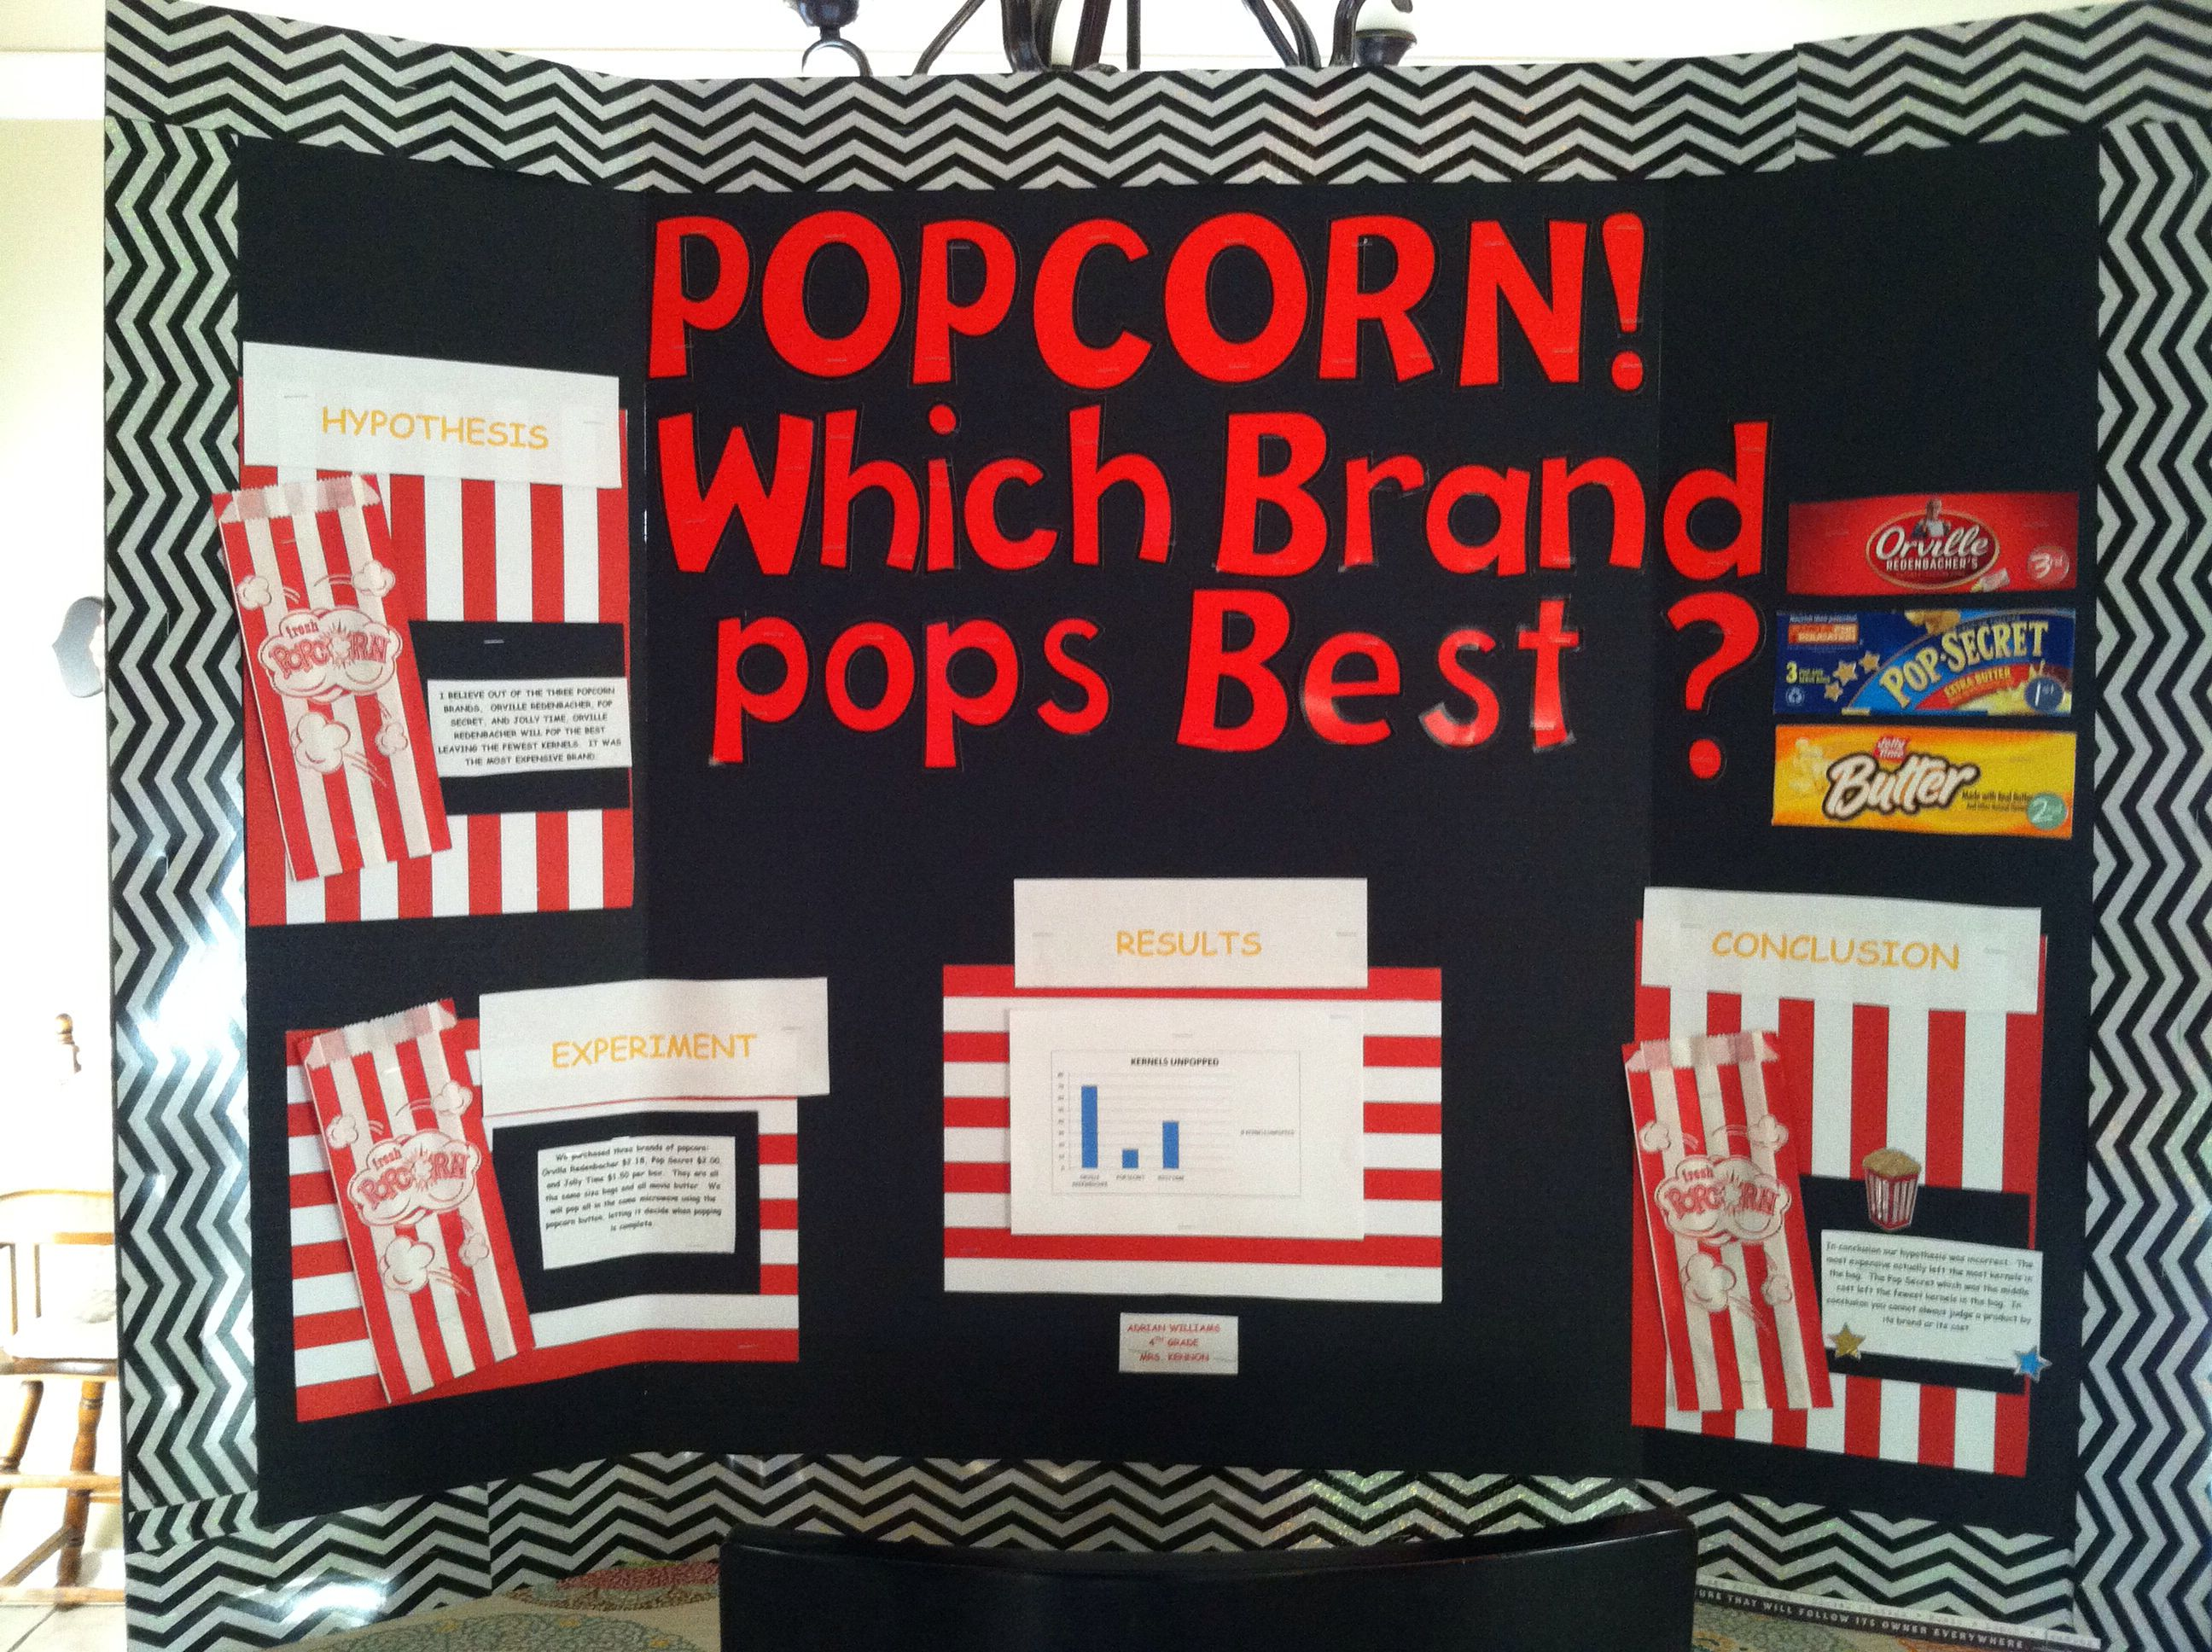 10 Spectacular Science Fair Project Ideas For Kids In 4Th ...  |4th Grade Science School Projects